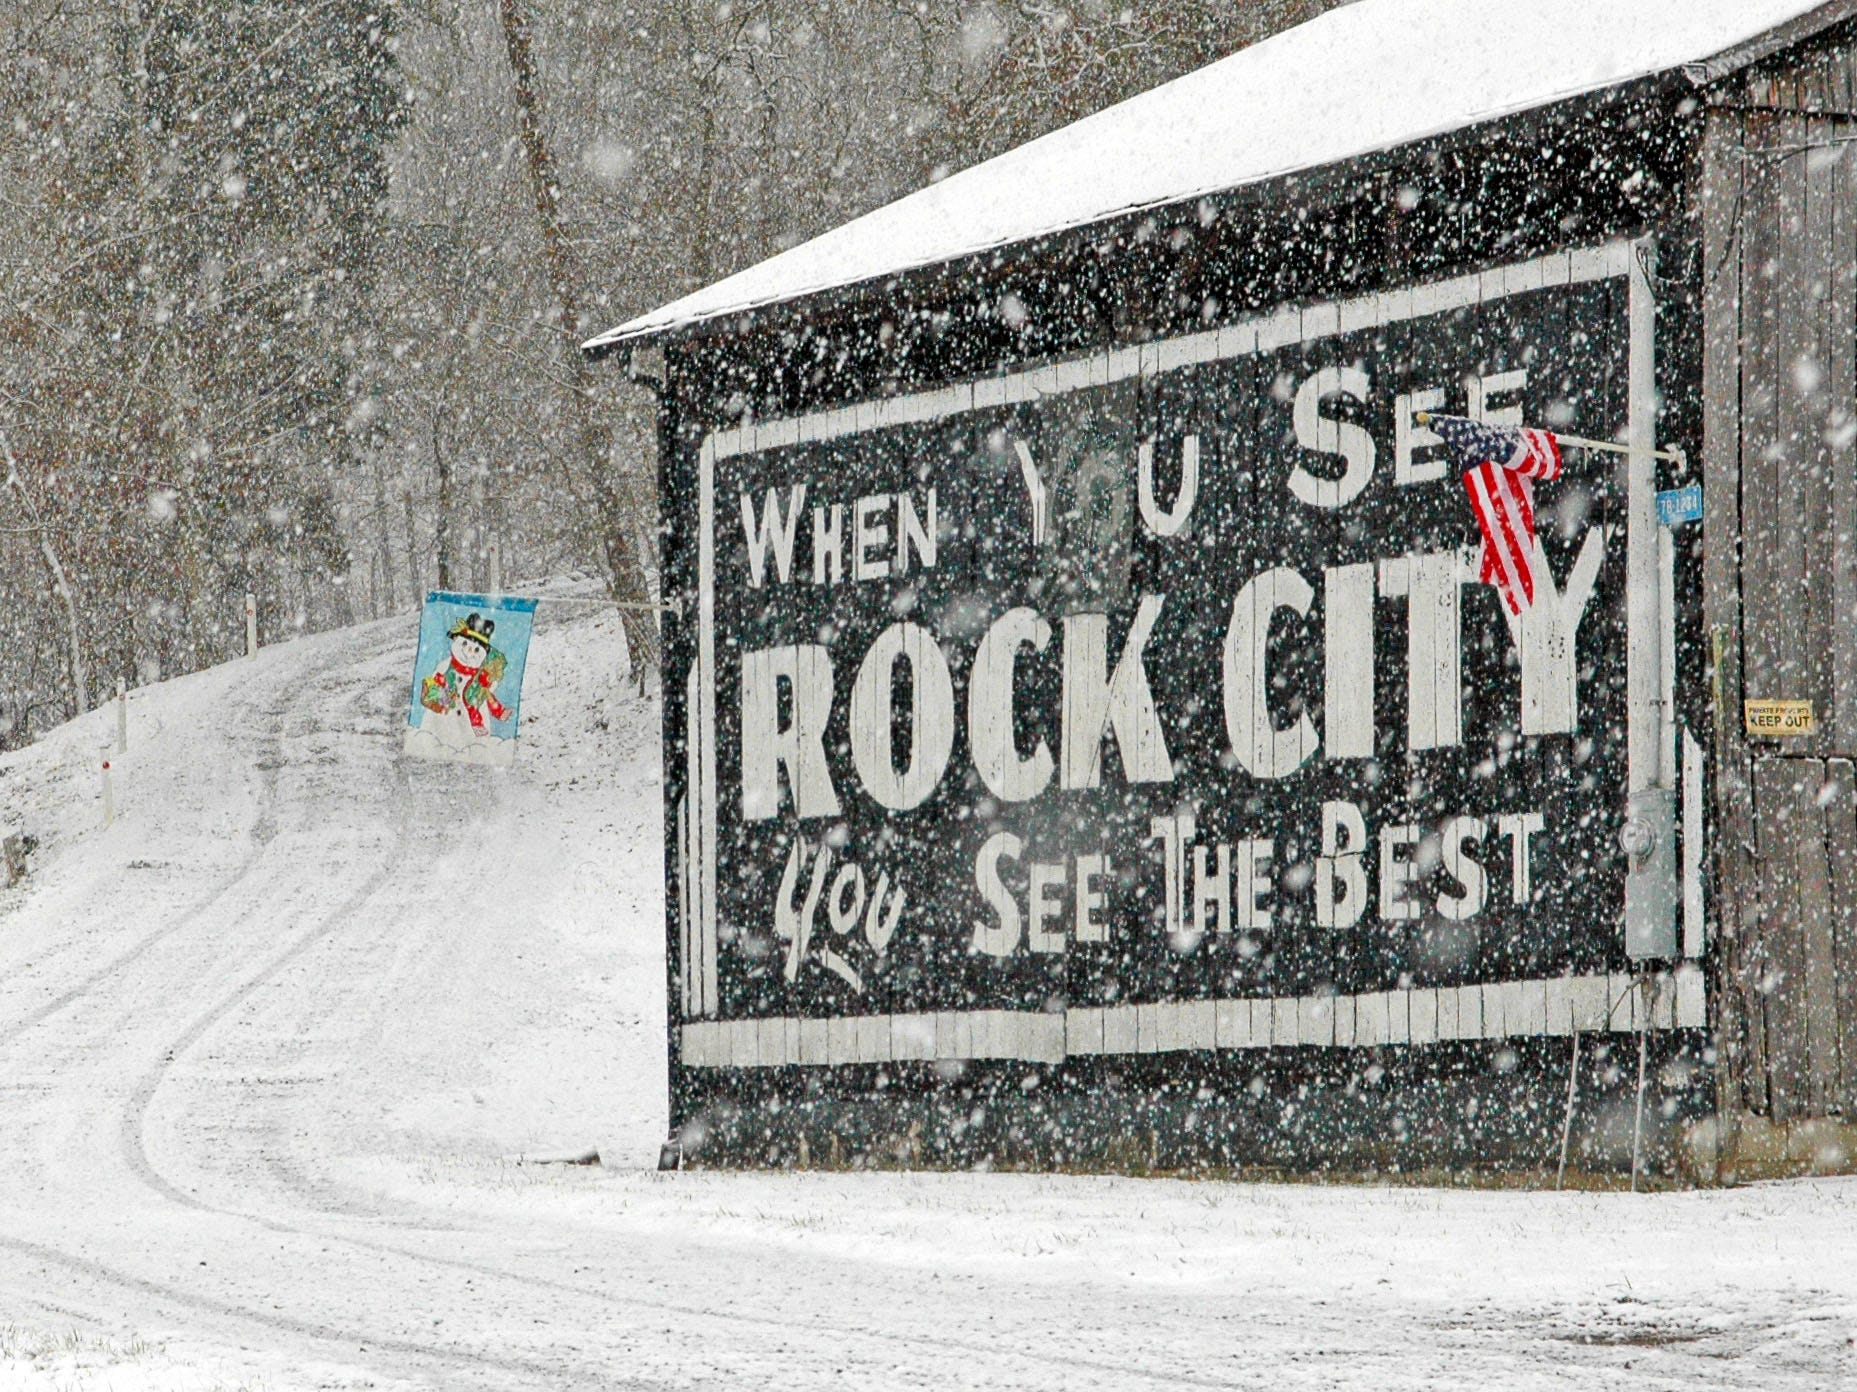 "An Americana classic is seen through the snow last week on Chapman Highway near Sevierville in 2008. It is one of hundreds of barns emblazoned since 1935 with advertising for the Lookout Mountain attraction according to Rock City spokeswoman Karen Baker. ""We're still painting them but it's harder because of highway ordinances. Barn advertising is governed the same as billboards,"" she said. According to Baker, here are currently about 90 Rock City barns in the Southeast and most  are the handiwork of Chattanooga sign painter Jerry Cannon. The National Weather Service forecast for Knoxville and vicinity calls for a 70% chance of snow Saturday with accumulations of up to 2 inches."